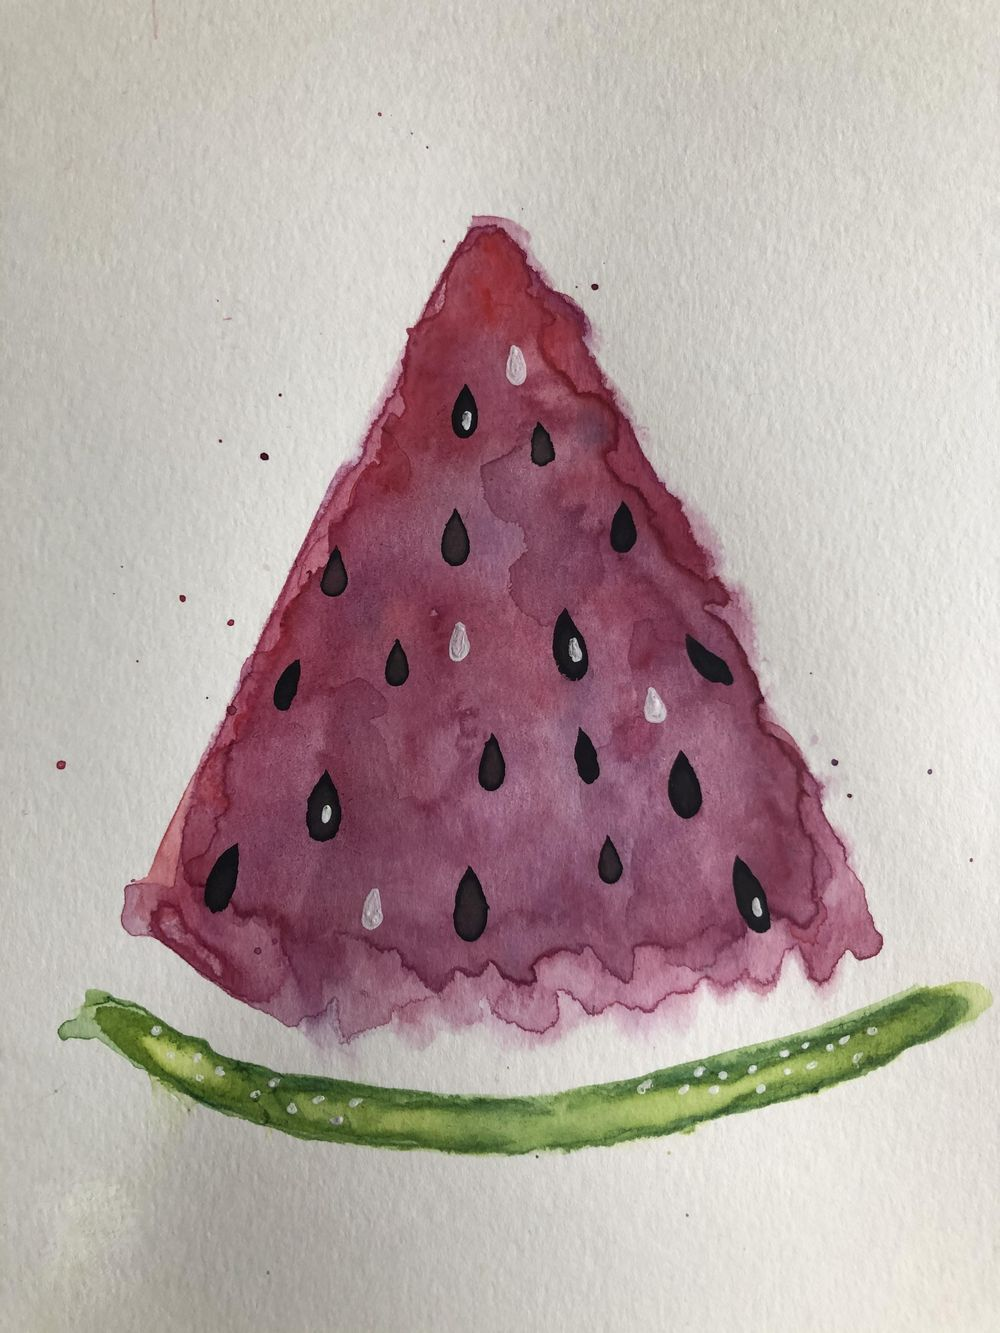 Watercolor sweets & treats - image 1 - student project